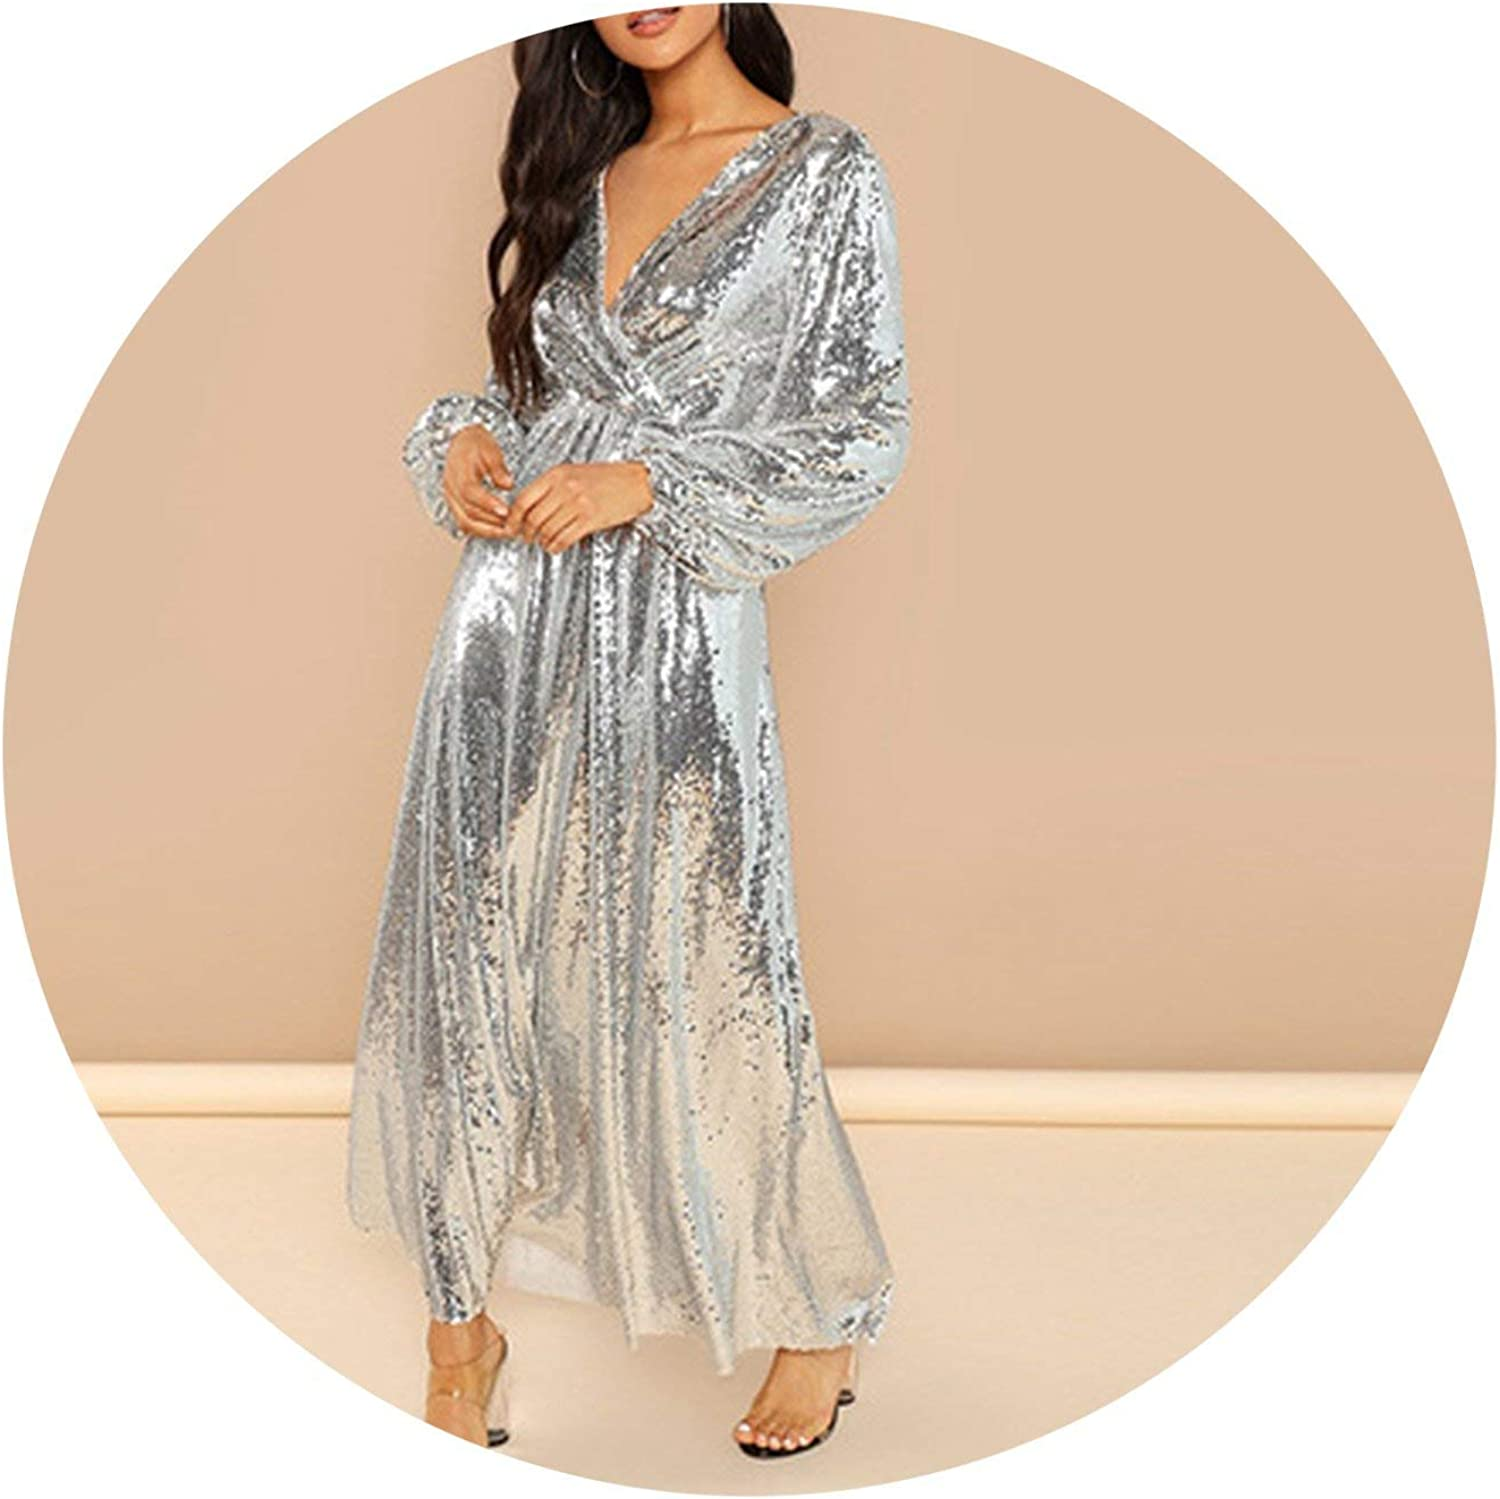 Leifun Silver Sleeve Wrap Front Sequin V Neck Fit and Flare Long Sleeve Dress Elegant Dresses Women Dress